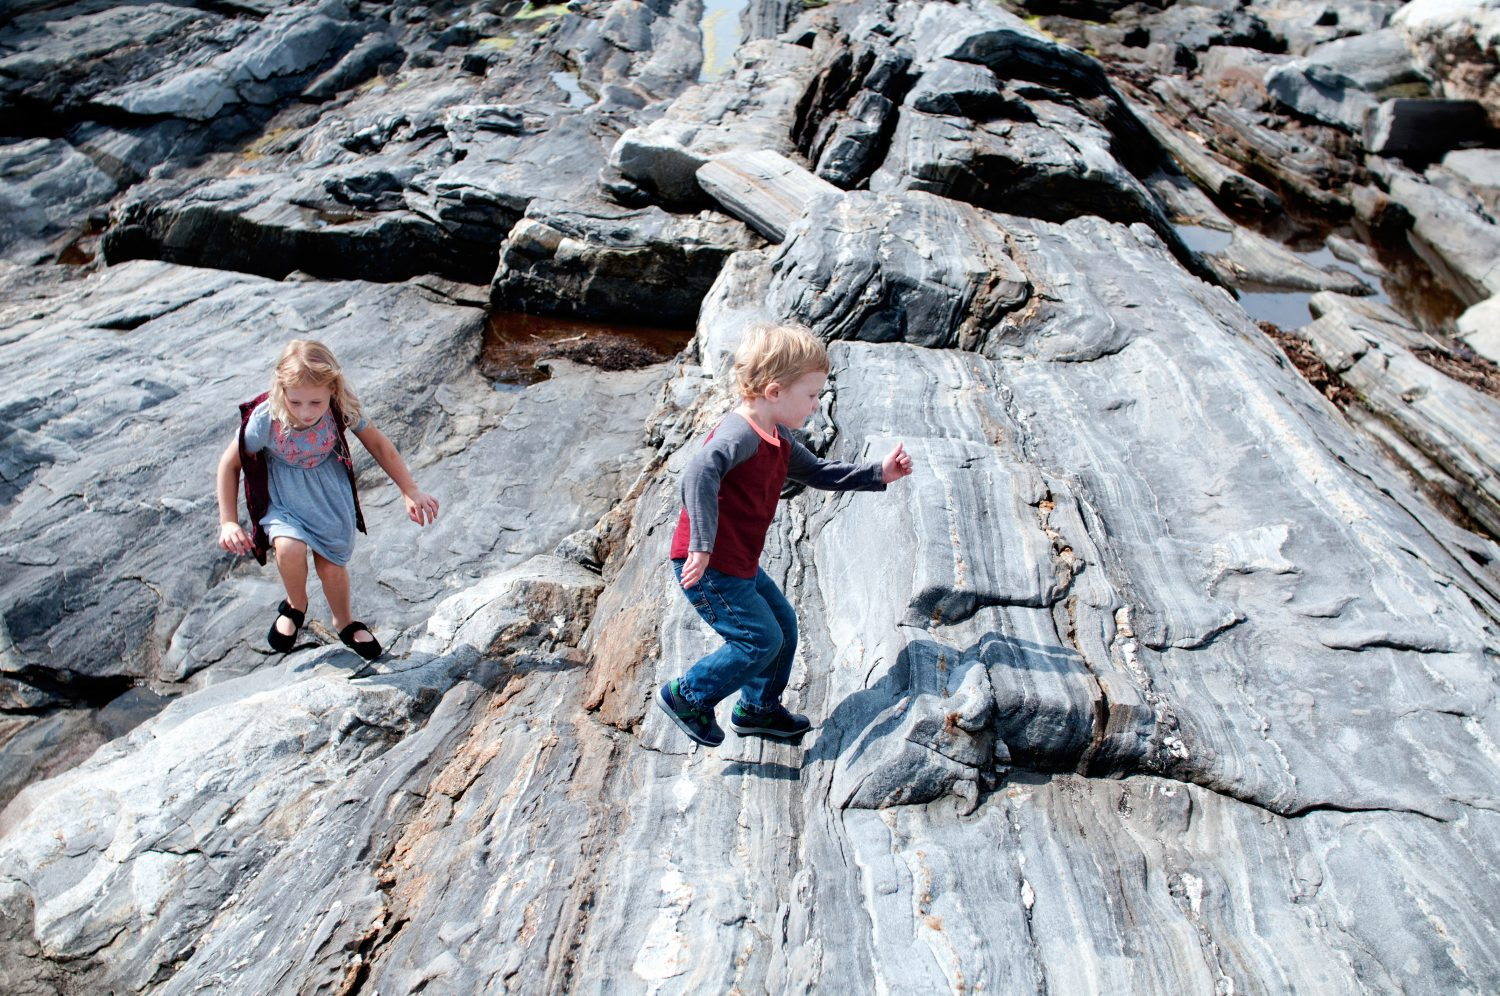 brother and sister playing on rocks at the ocean